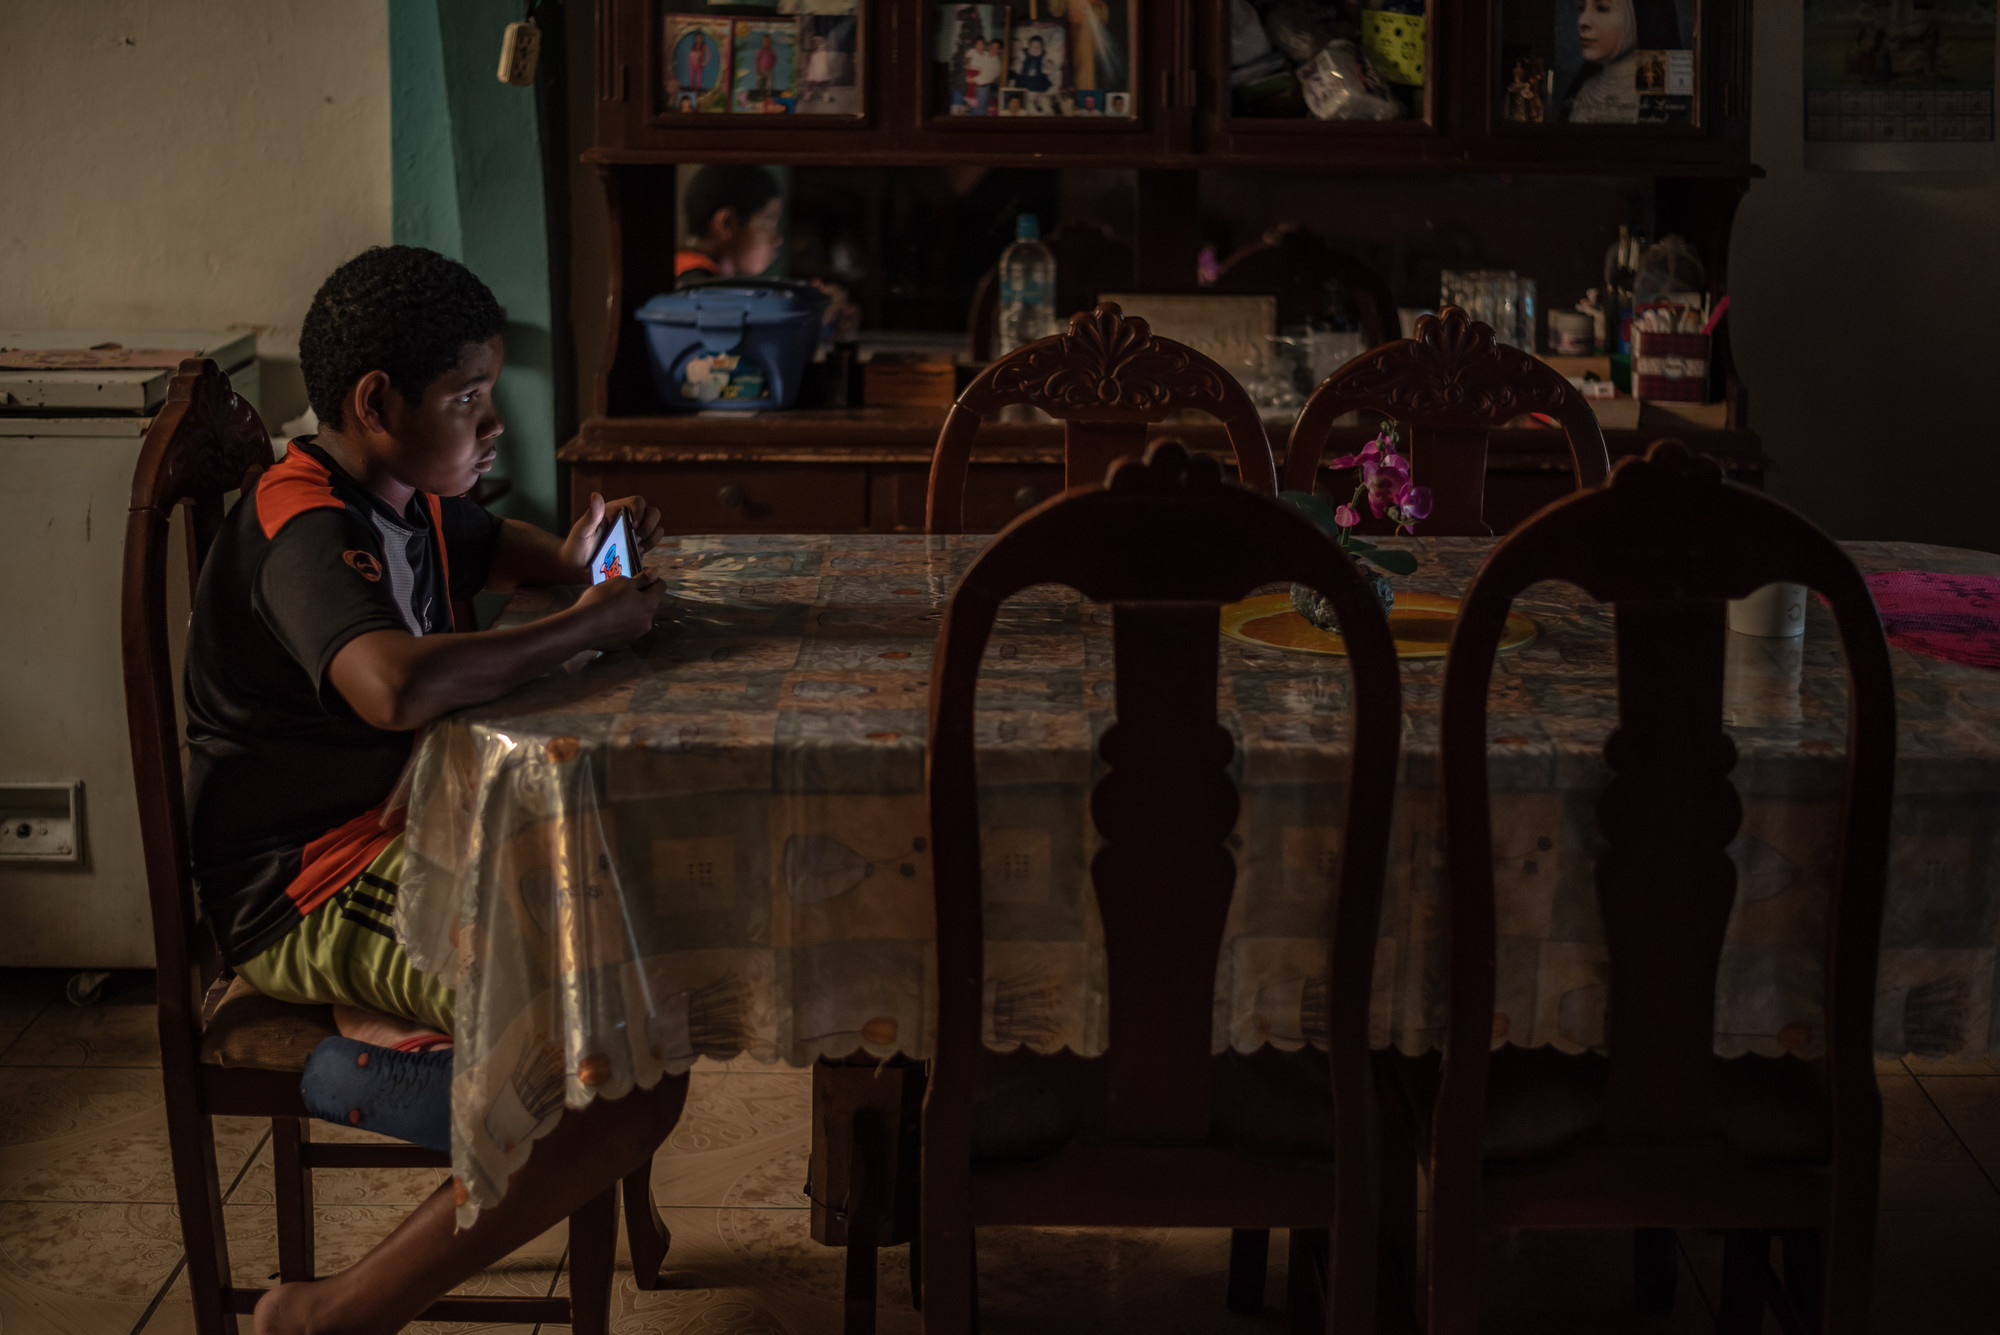 A boy sits at a table looking at a mobile phone.